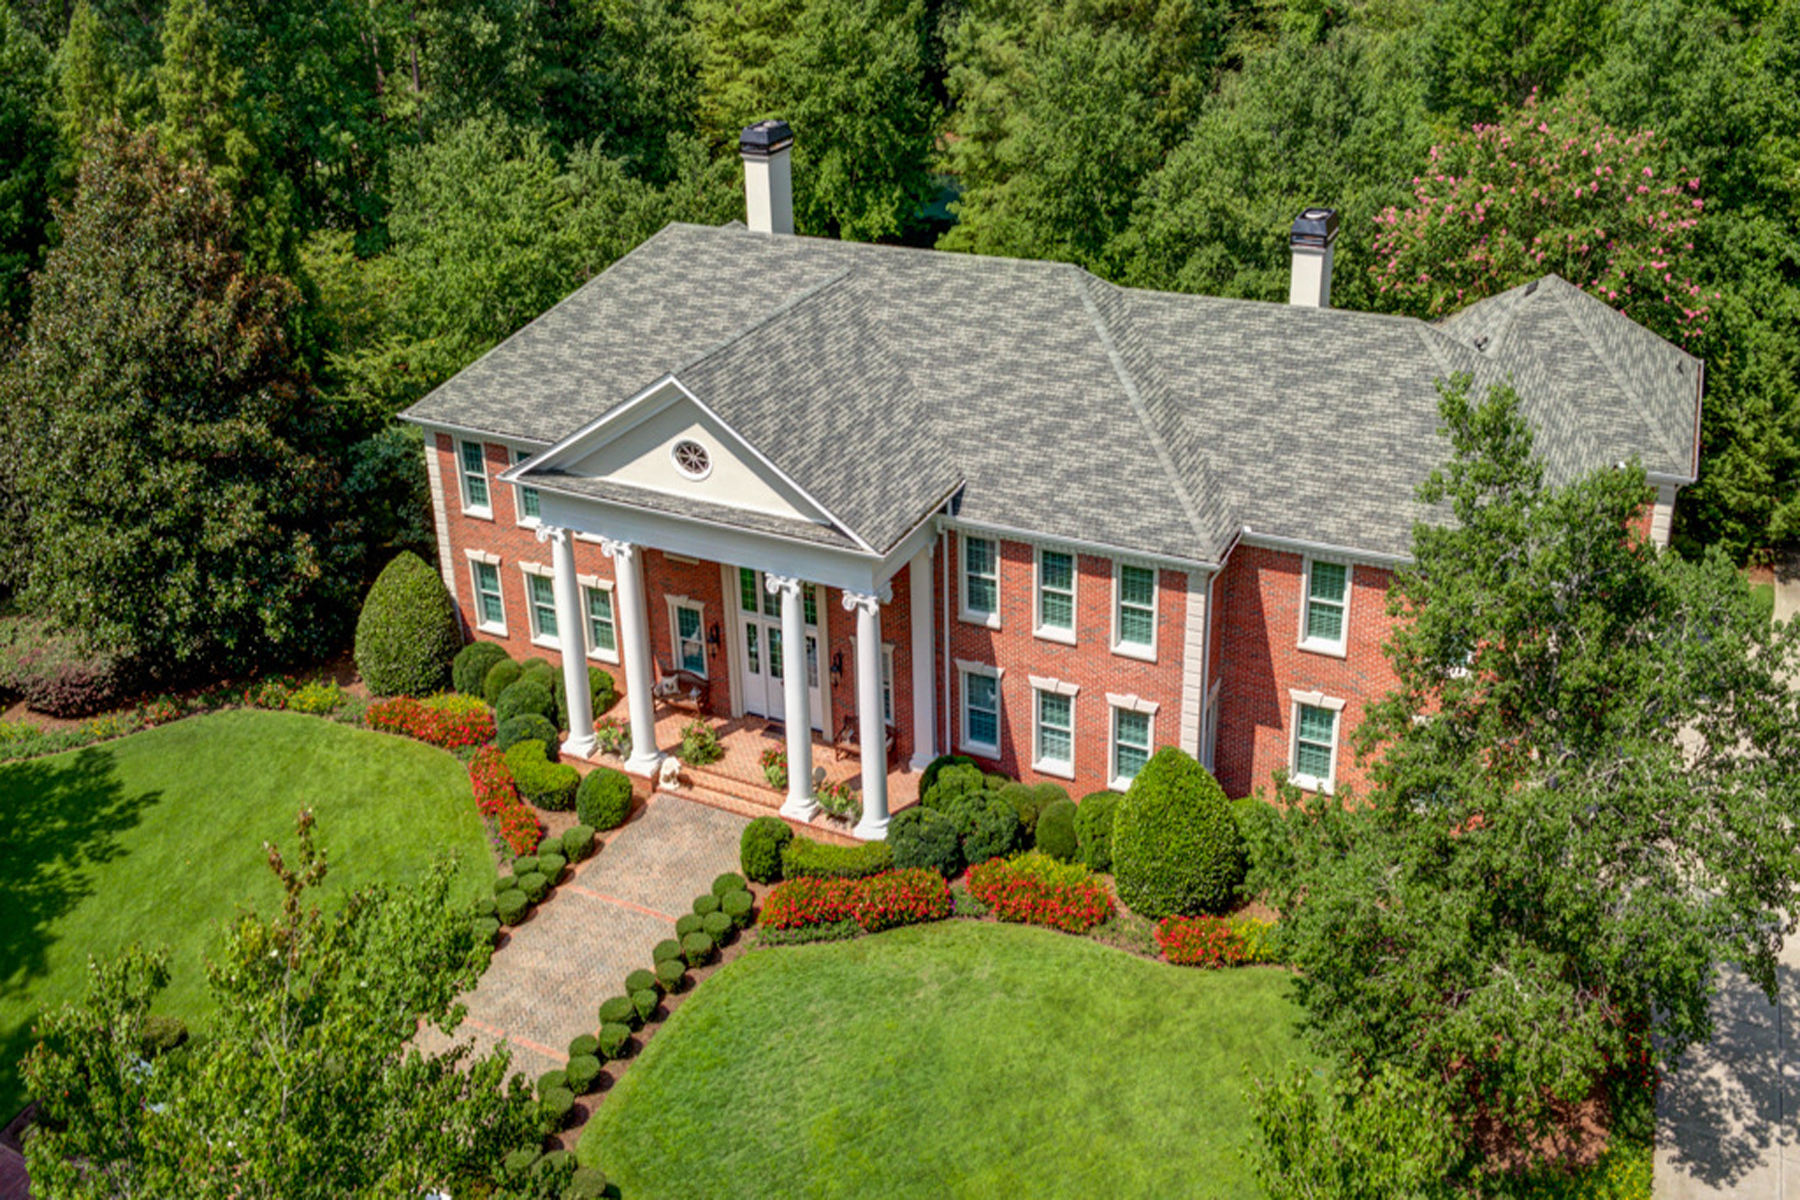 단독 가정 주택 용 매매 에 Meticulous Custom Built Home On Five Acres 4500 Candacraig Alpharetta, 조지아 30022 미국